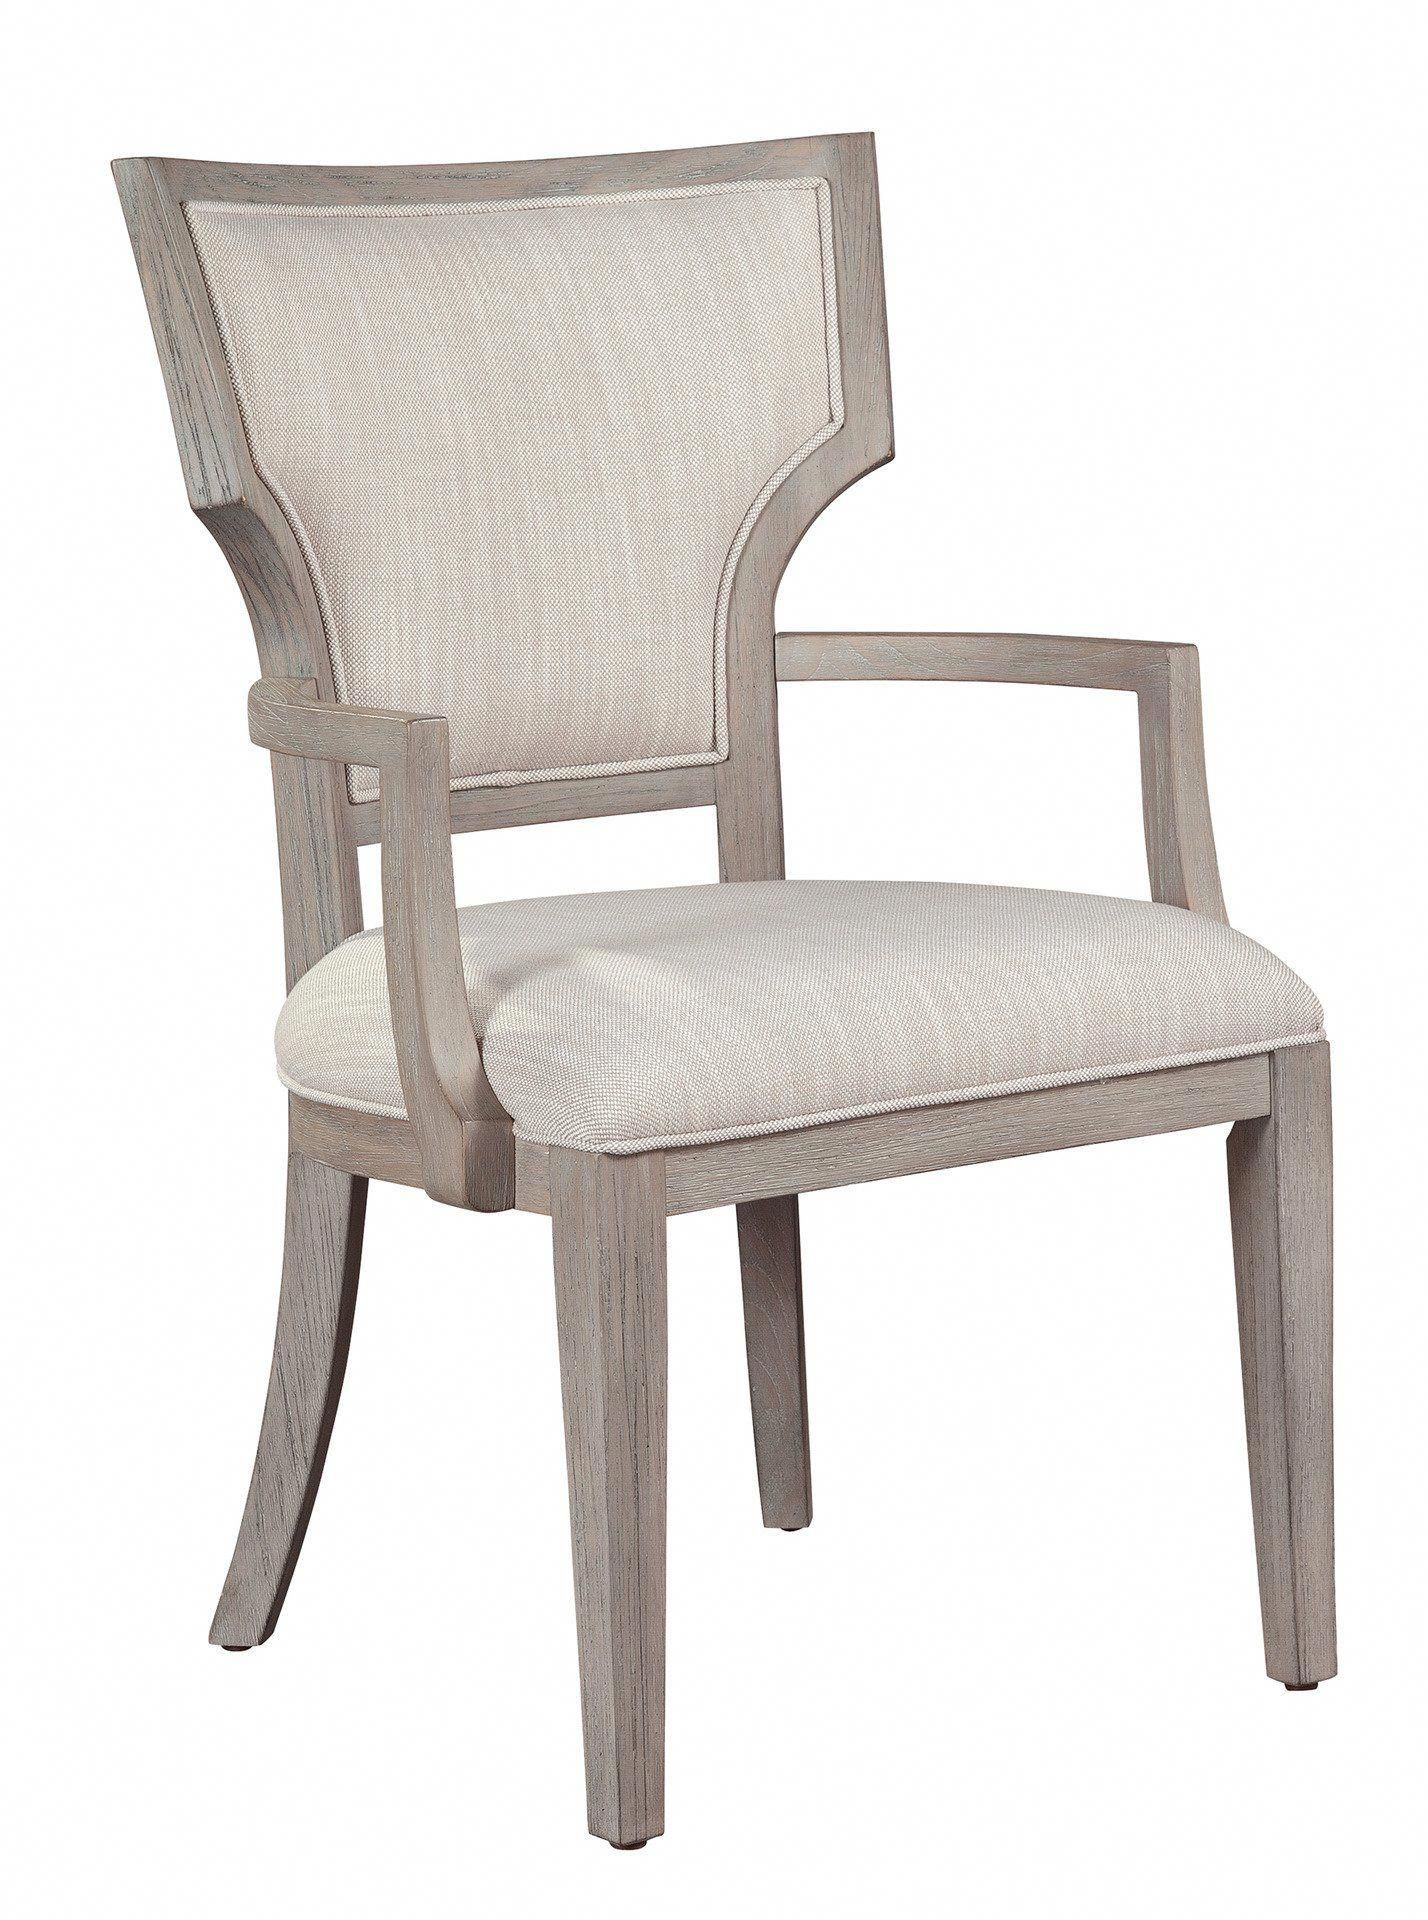 Palisades Arm Dining Chair Fabricdiningchairs Office Waiting Room Chairs Floor Protectors For